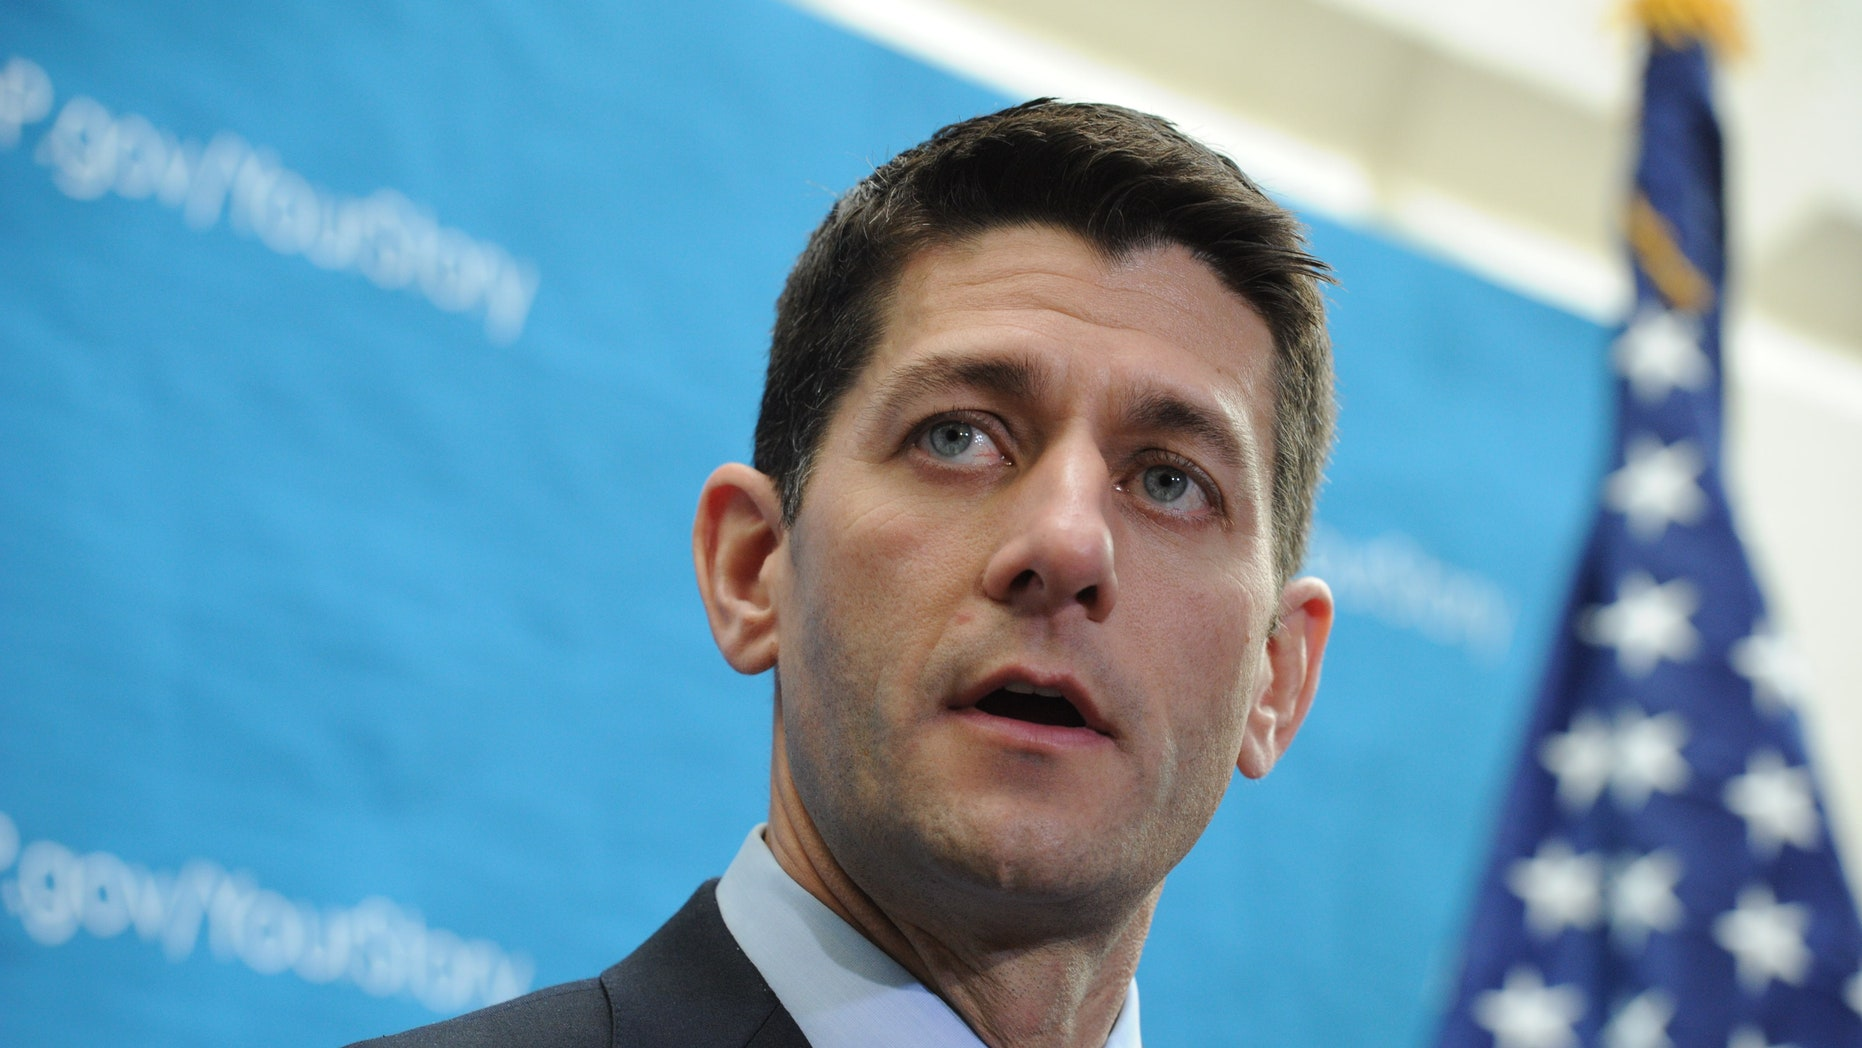 """WASHINGTON, DC - DECEMBER 11: Chairman of the House Budget Committee Rep. Paul Ryan (R-WI.) offers remarks while joined by others form the GOP leadership, during a media availability following a Republican Conference meeting at the U.S. Capitol, December 11, 2013, in Washington, DC. House Speaker John Boehner responded to conservative groups opposing the newly announced bipartisan budget deal, saying """"They're using our members and they're using the American people for their own goals. This is ridiculous."""" (Photo by Rod Lamkey/Getty Images)"""